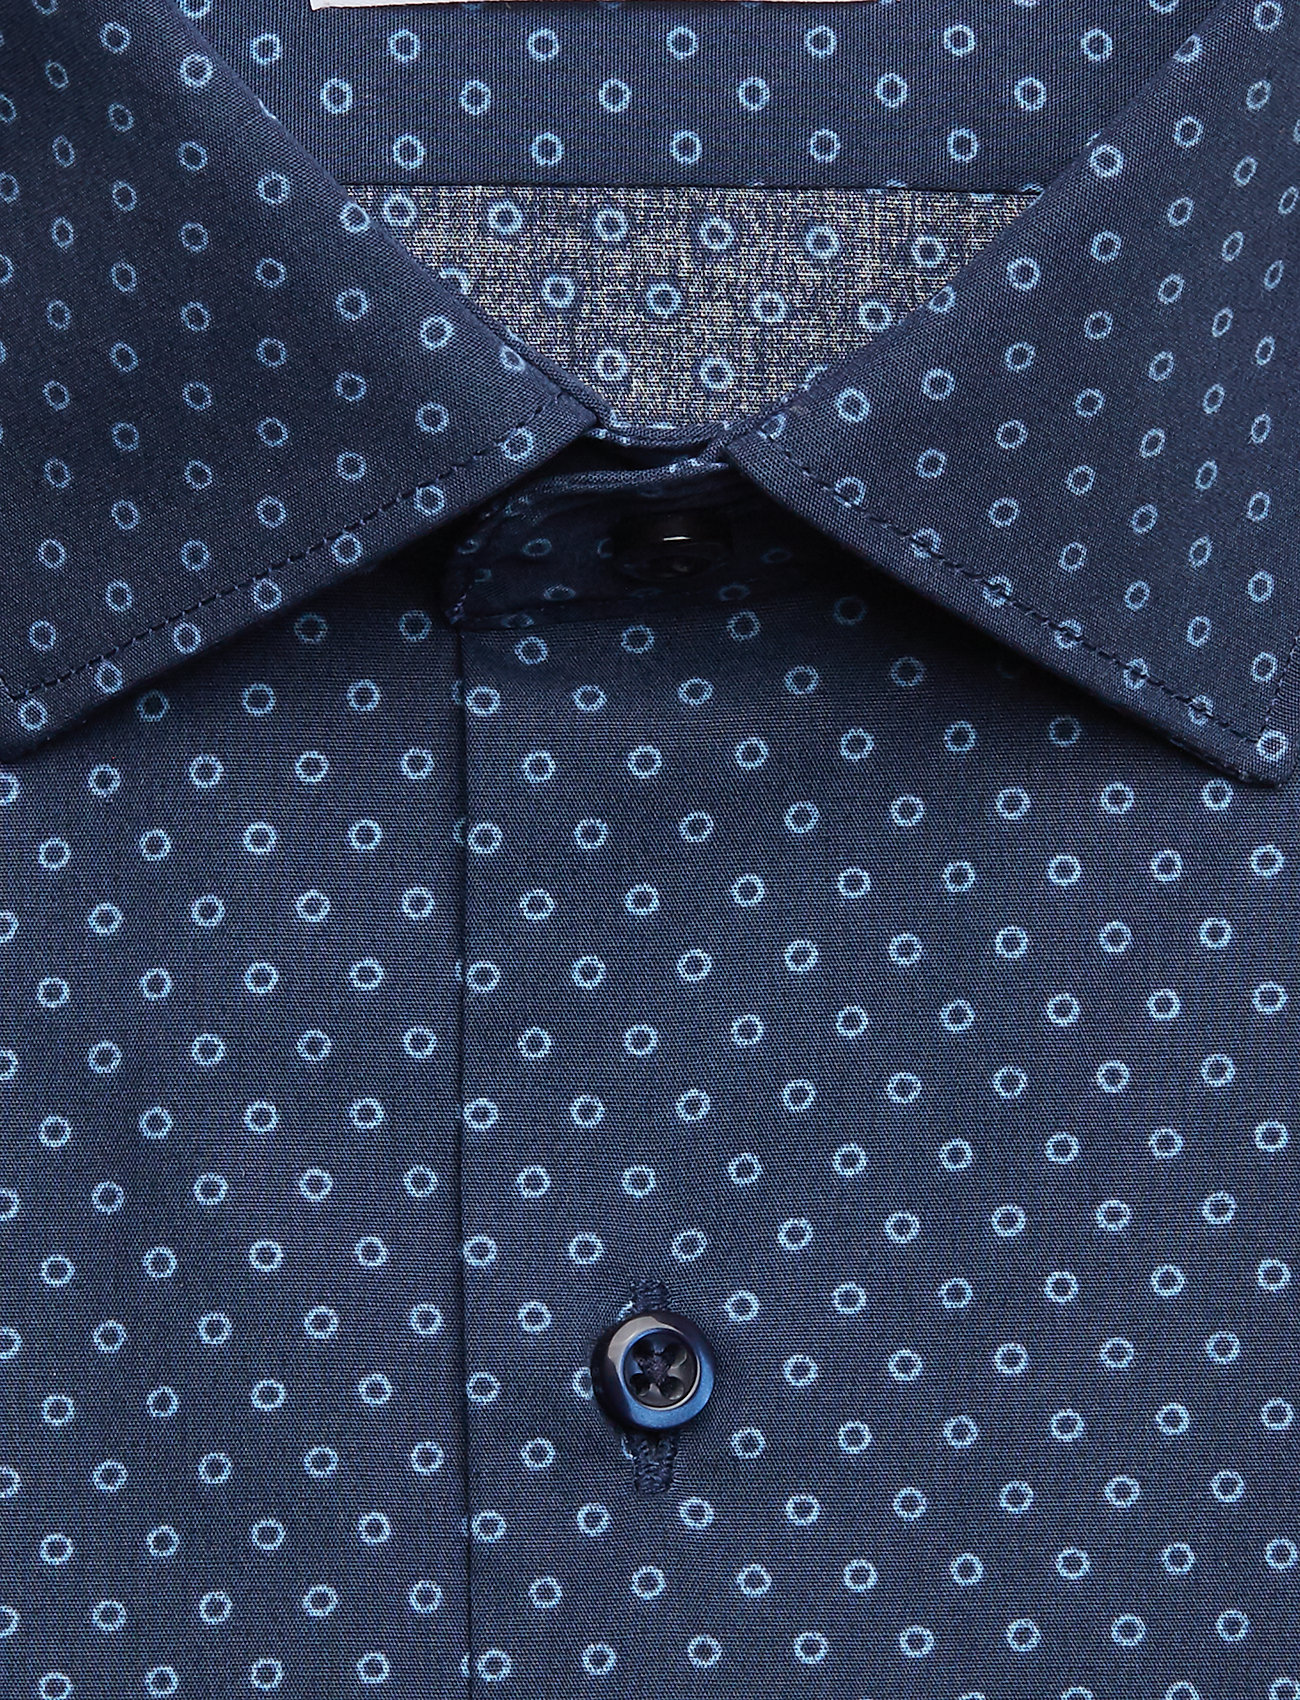 Seven Seas Copenhagen Print | Virginia - Regular Fit - Skjorter NAVY PATTERN - Menn Klær